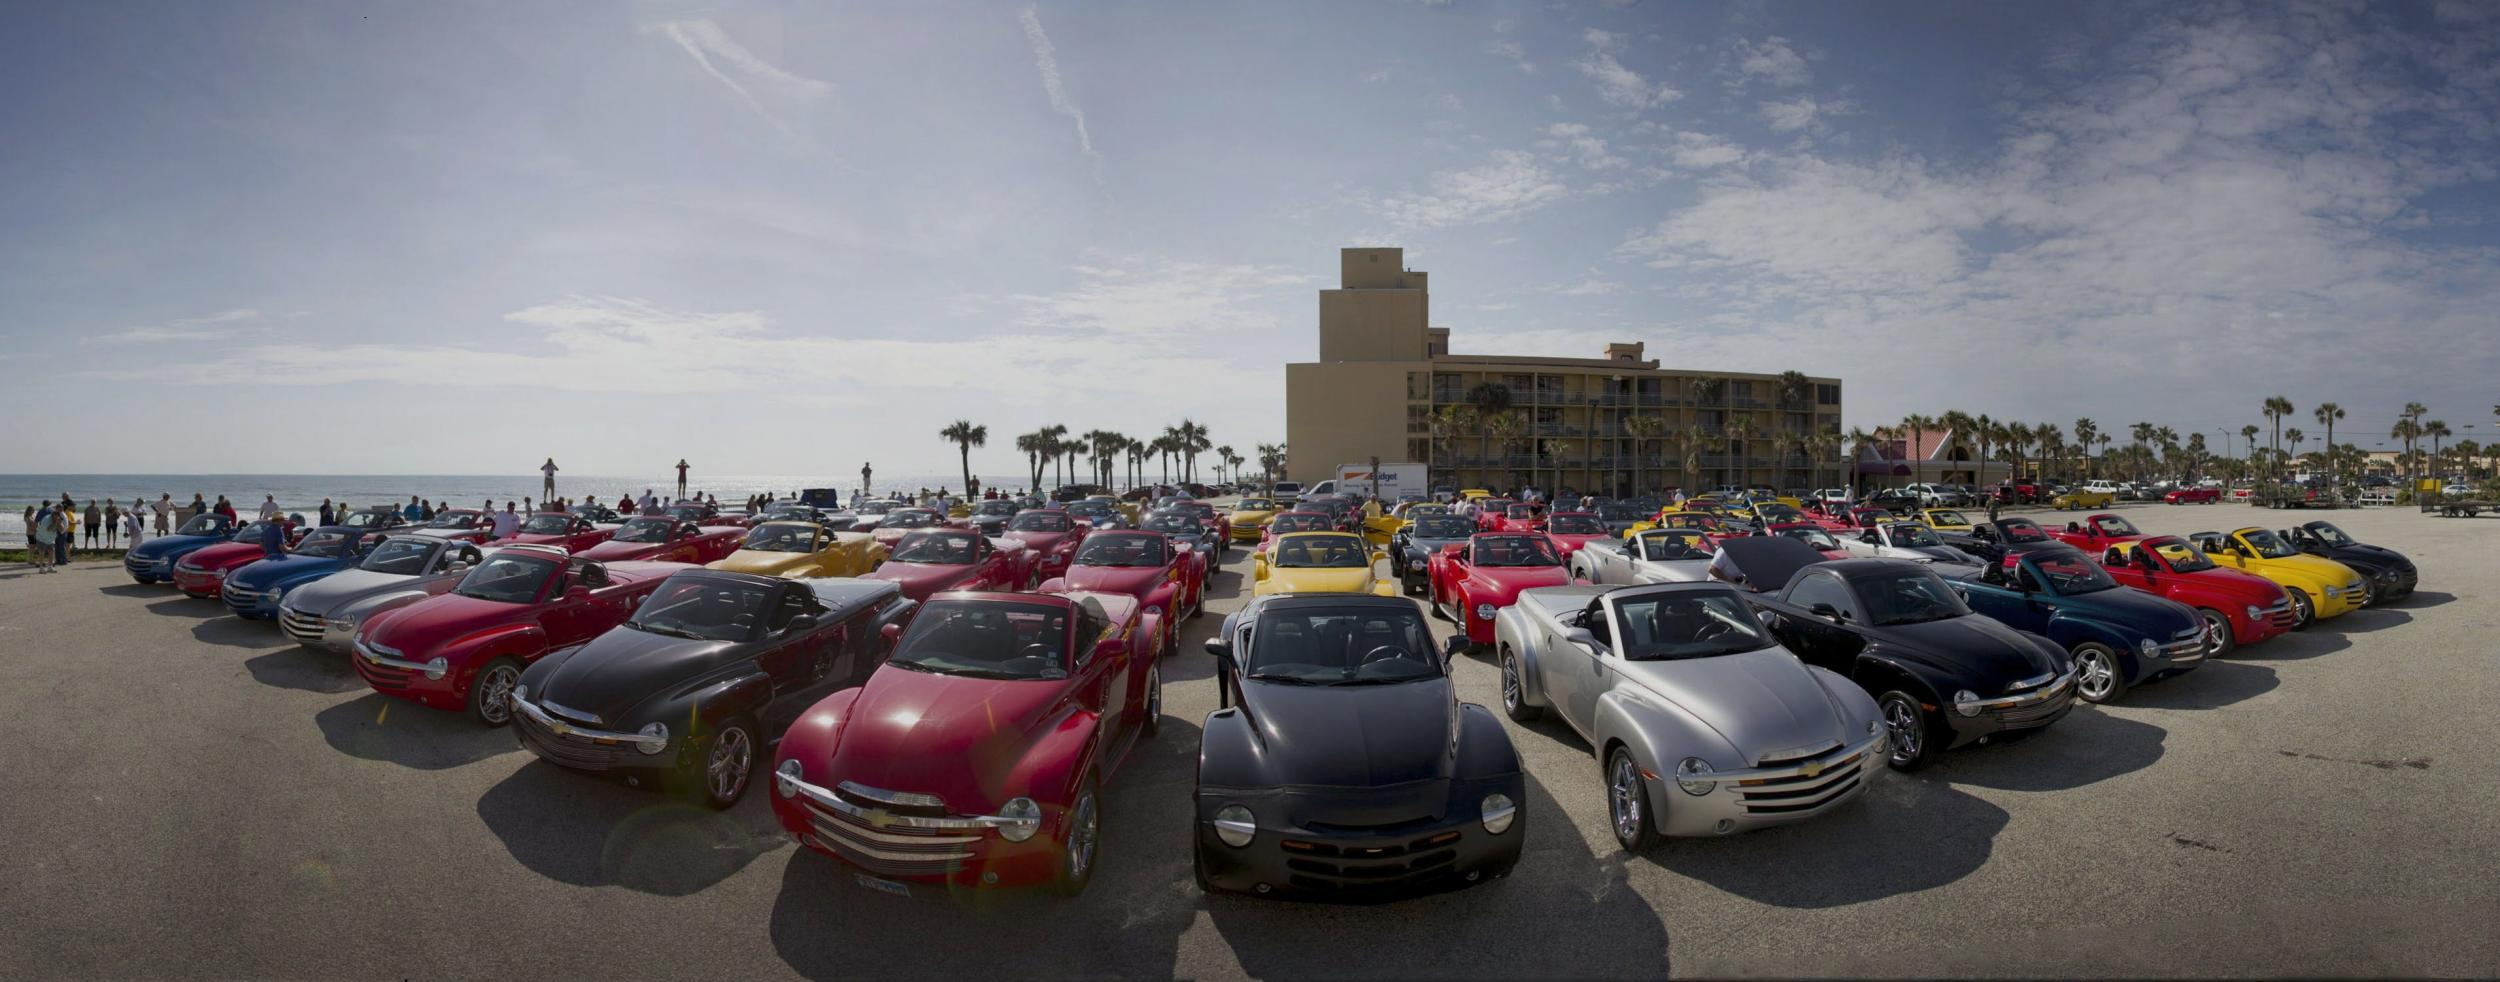 5th Annual Florida SSR RALLY, March 8, 9 &10, 2013-ssr_panorama.jpg